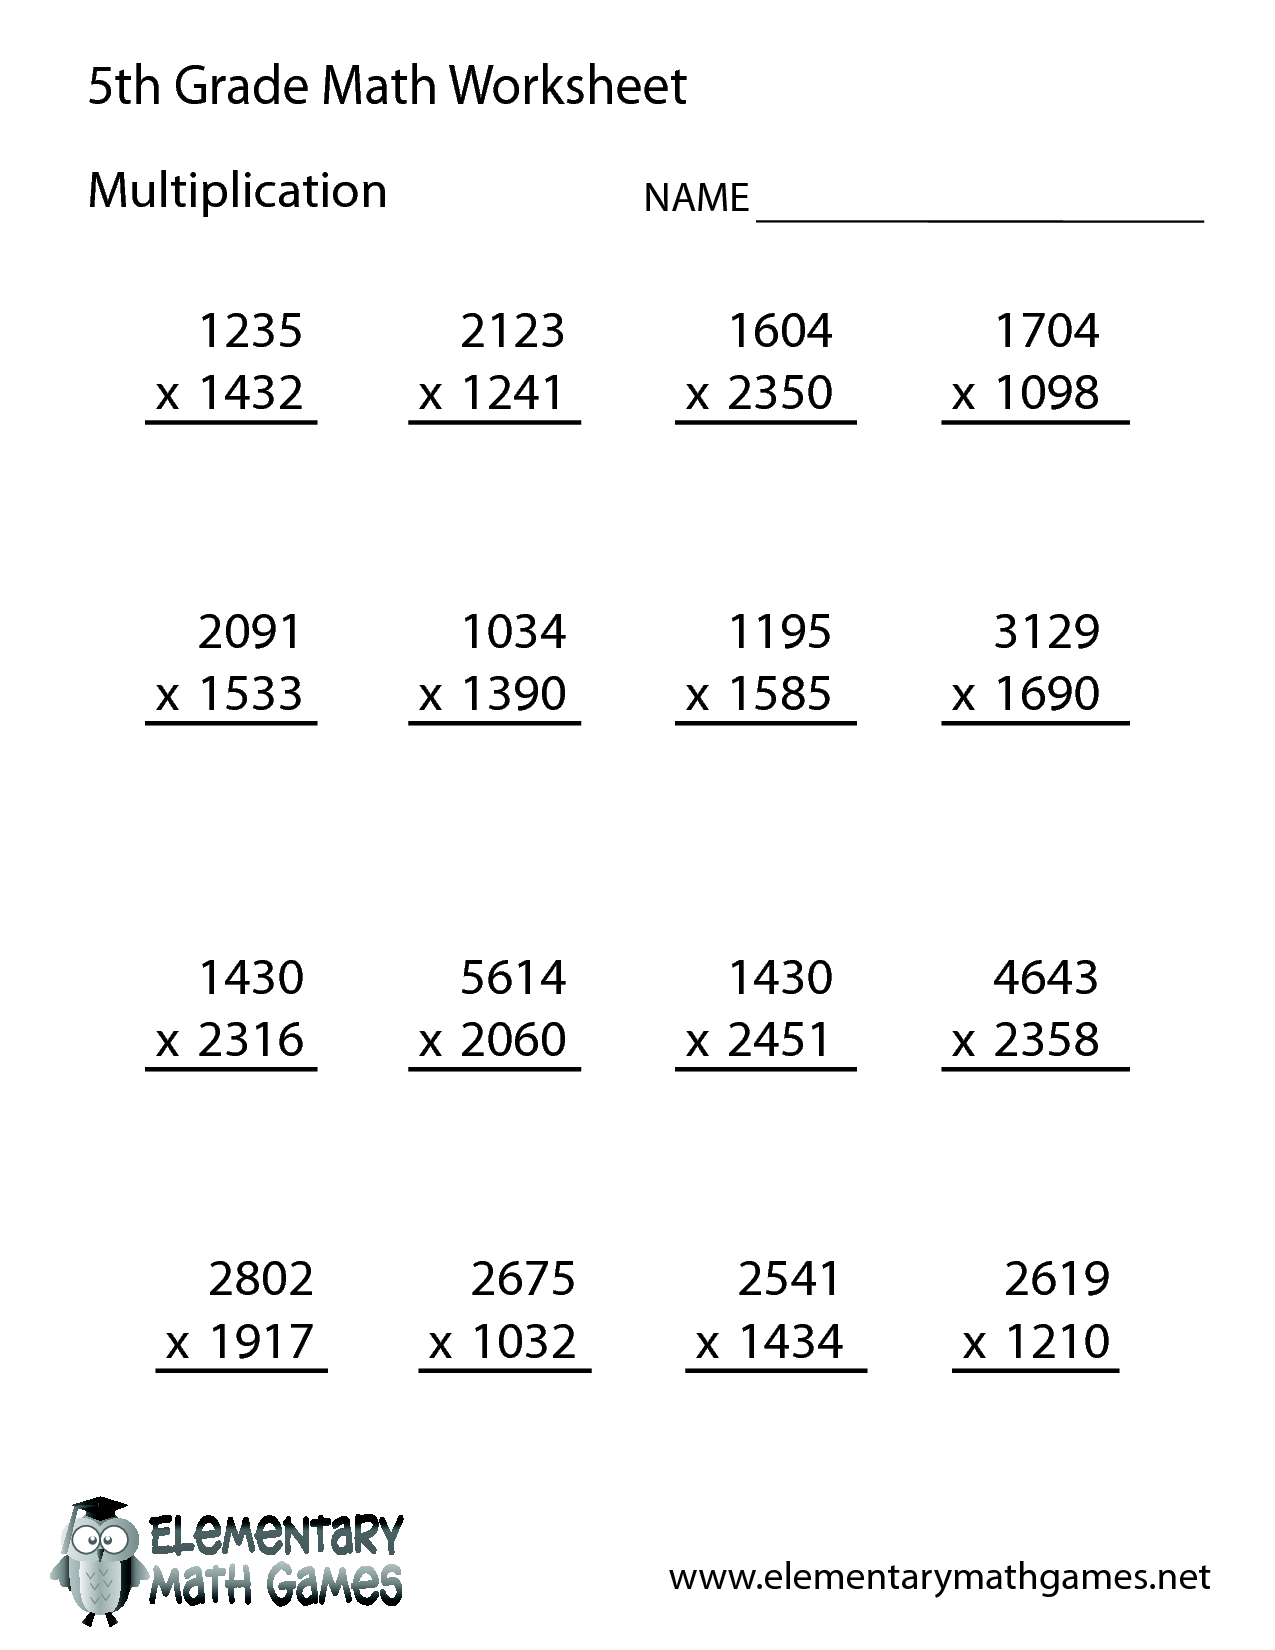 Free Math Worksheets for 5th Grade – Multiplication Practice Worksheets 5th Grade